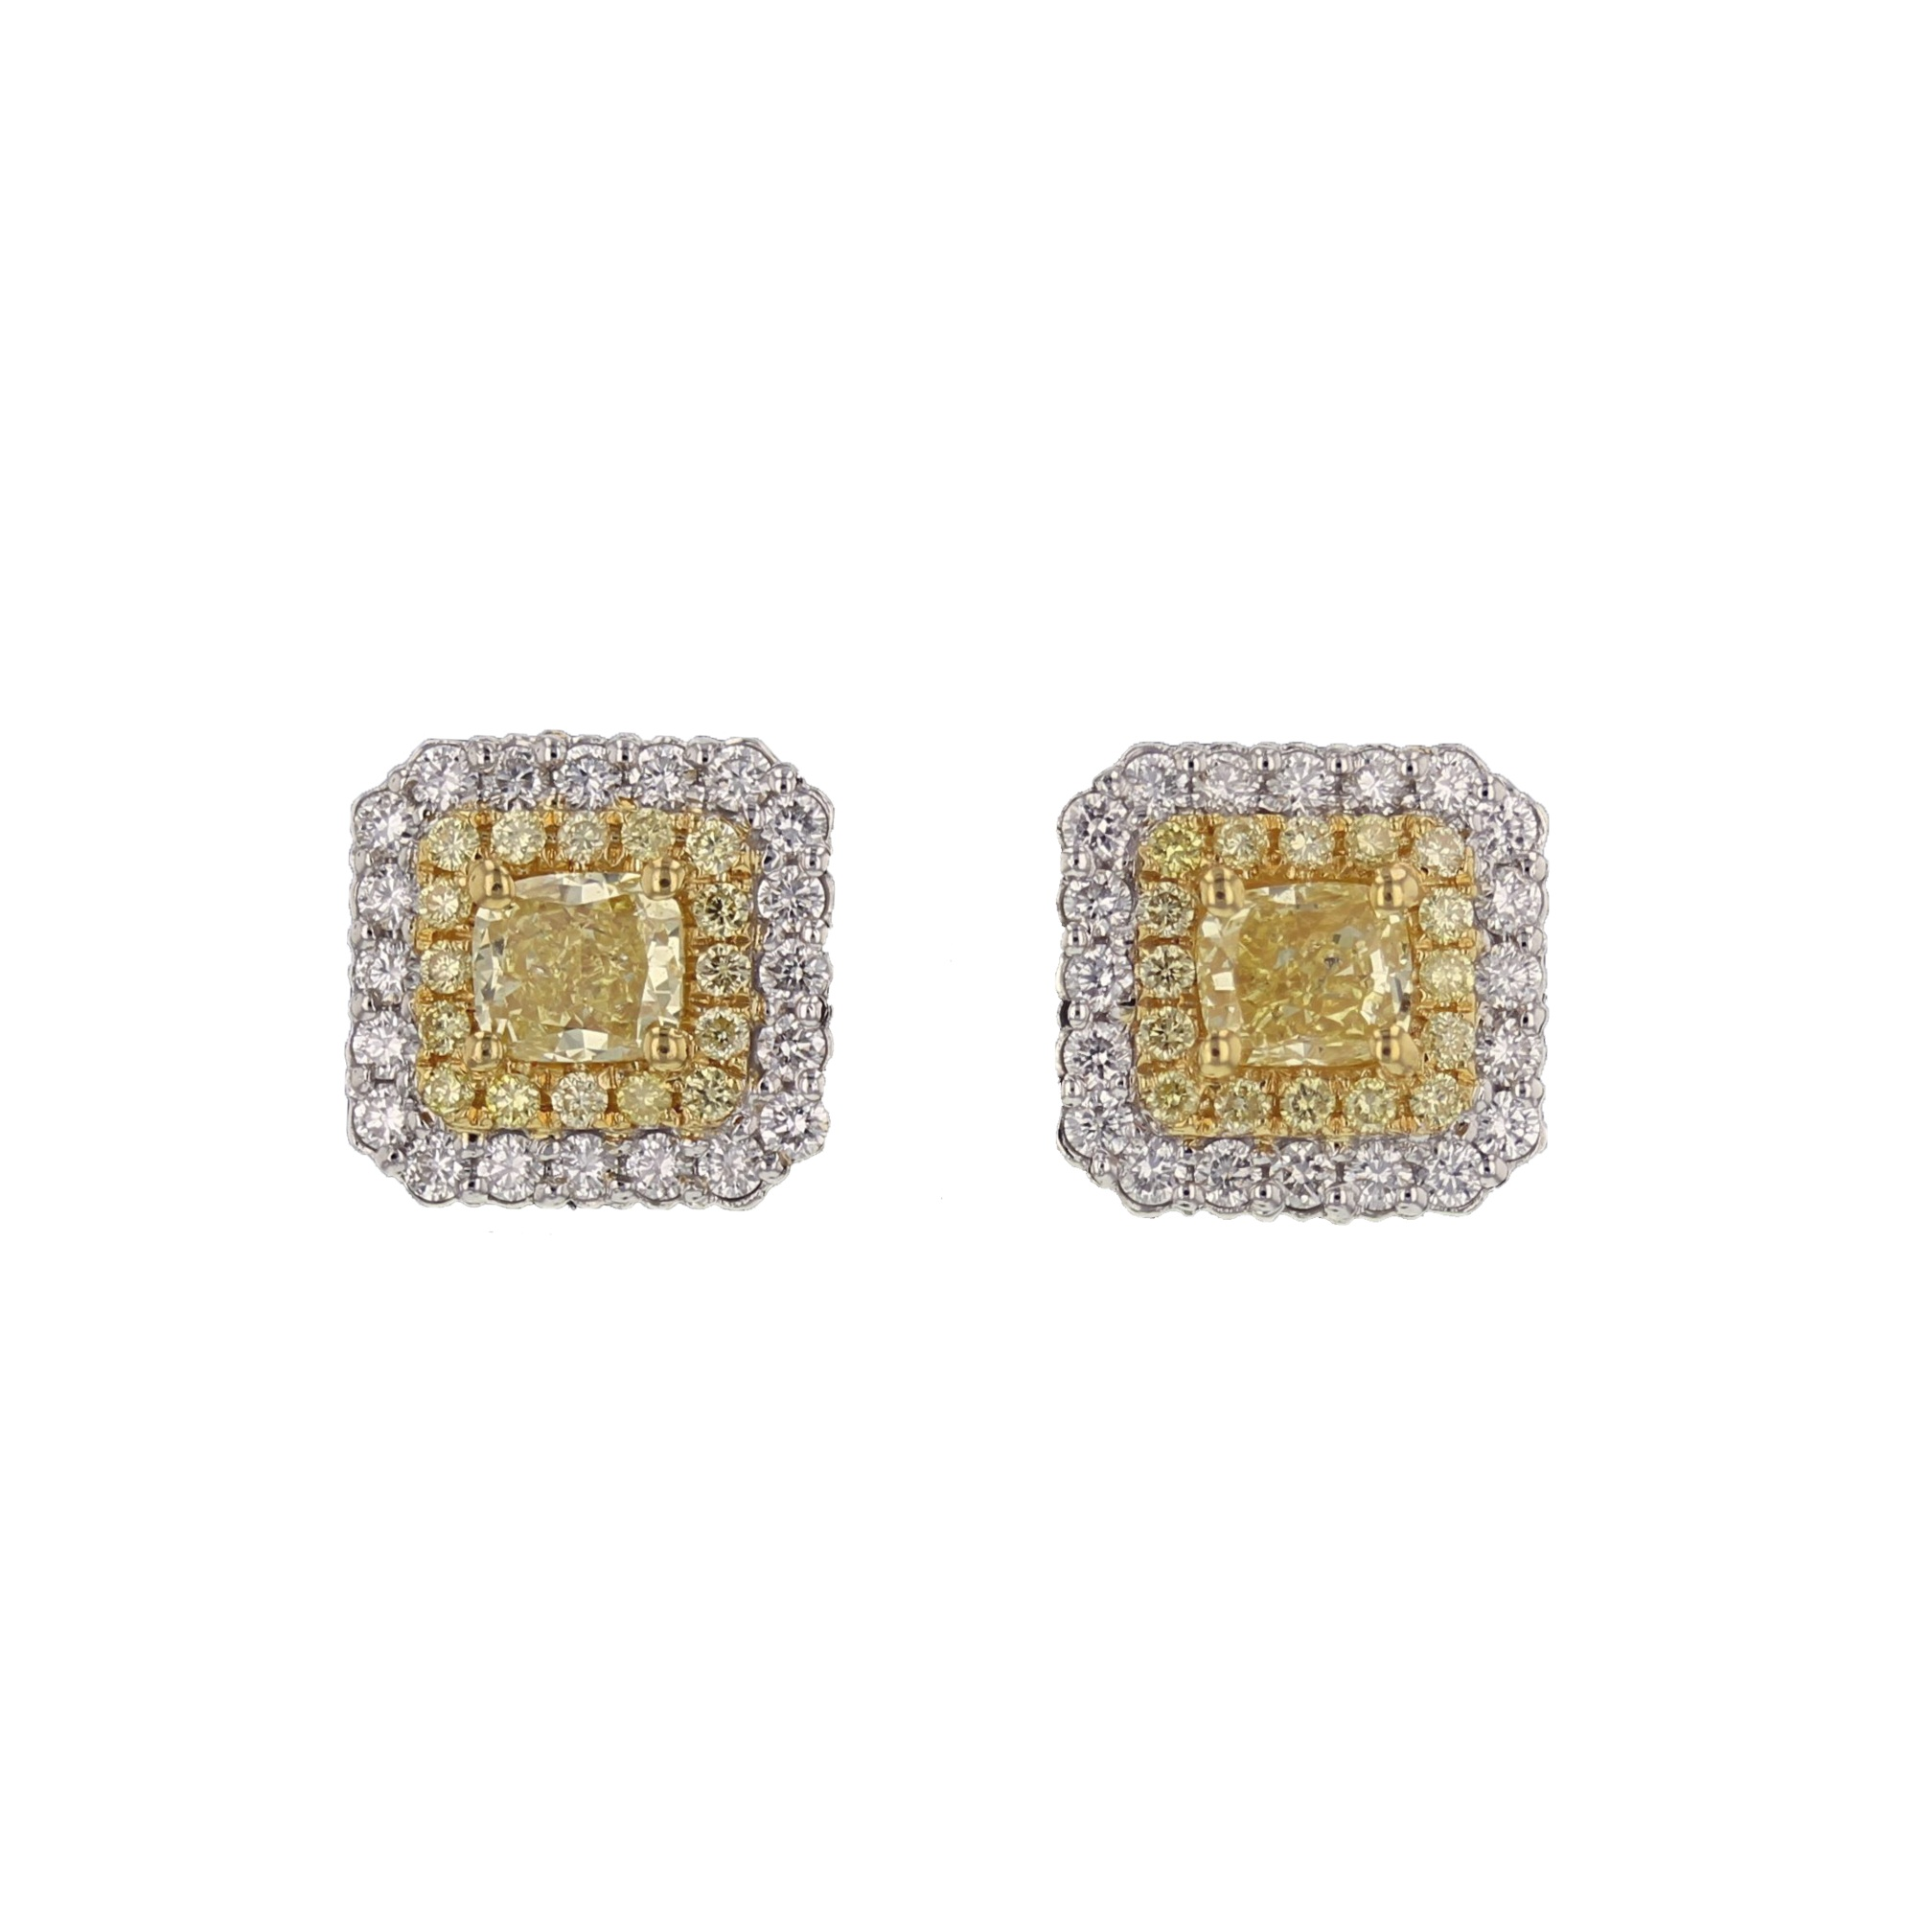 2+ ctw. Yellow & White Dia. earrings. $13,7000